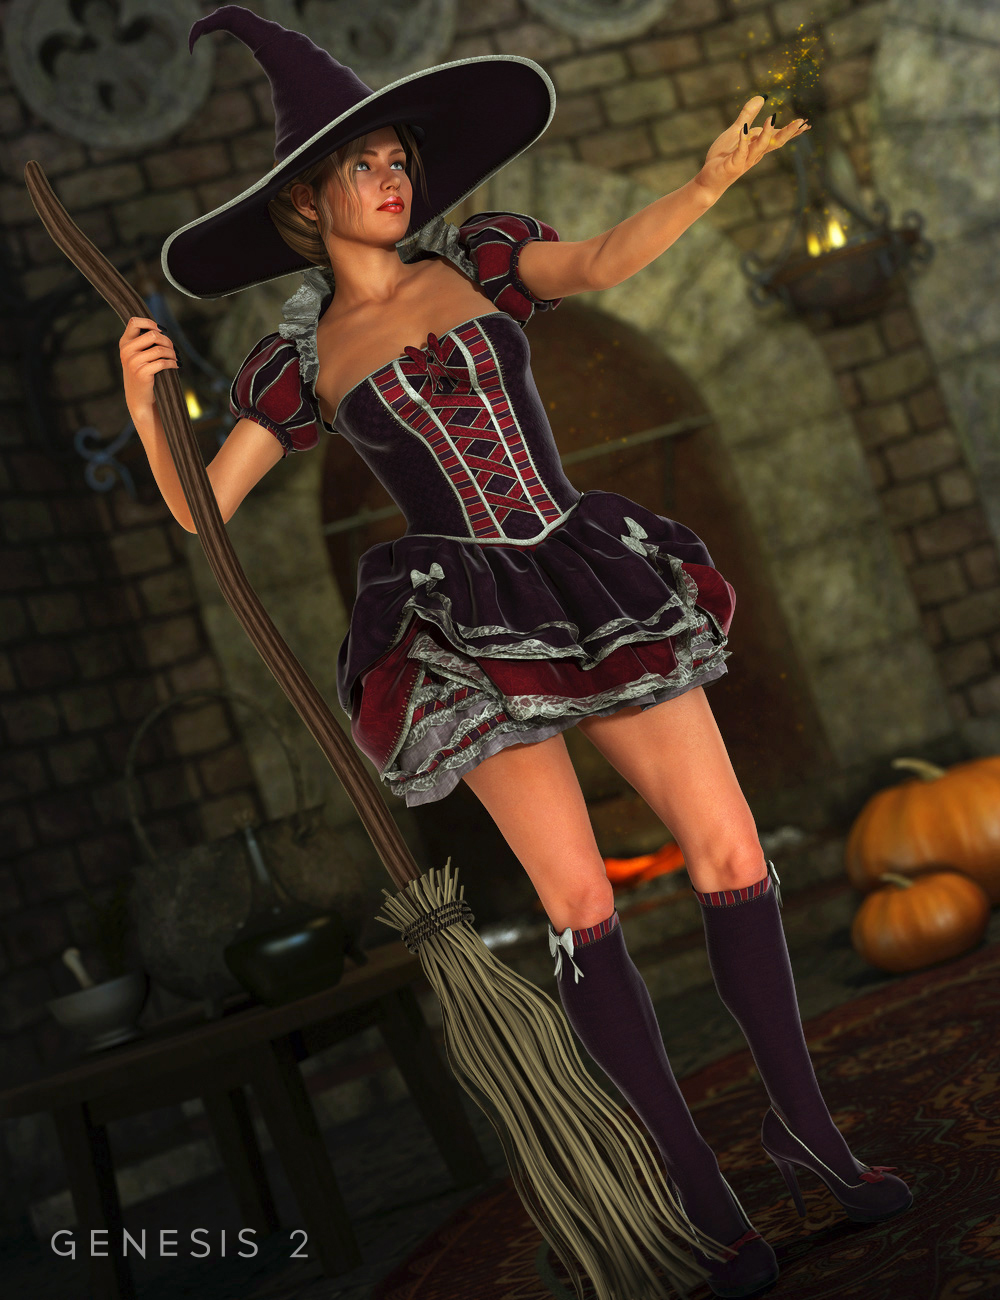 Storybook Outfit for Genesis 2 Female(s) by: Barbara BrundonSarsa, 3D Models by Daz 3D